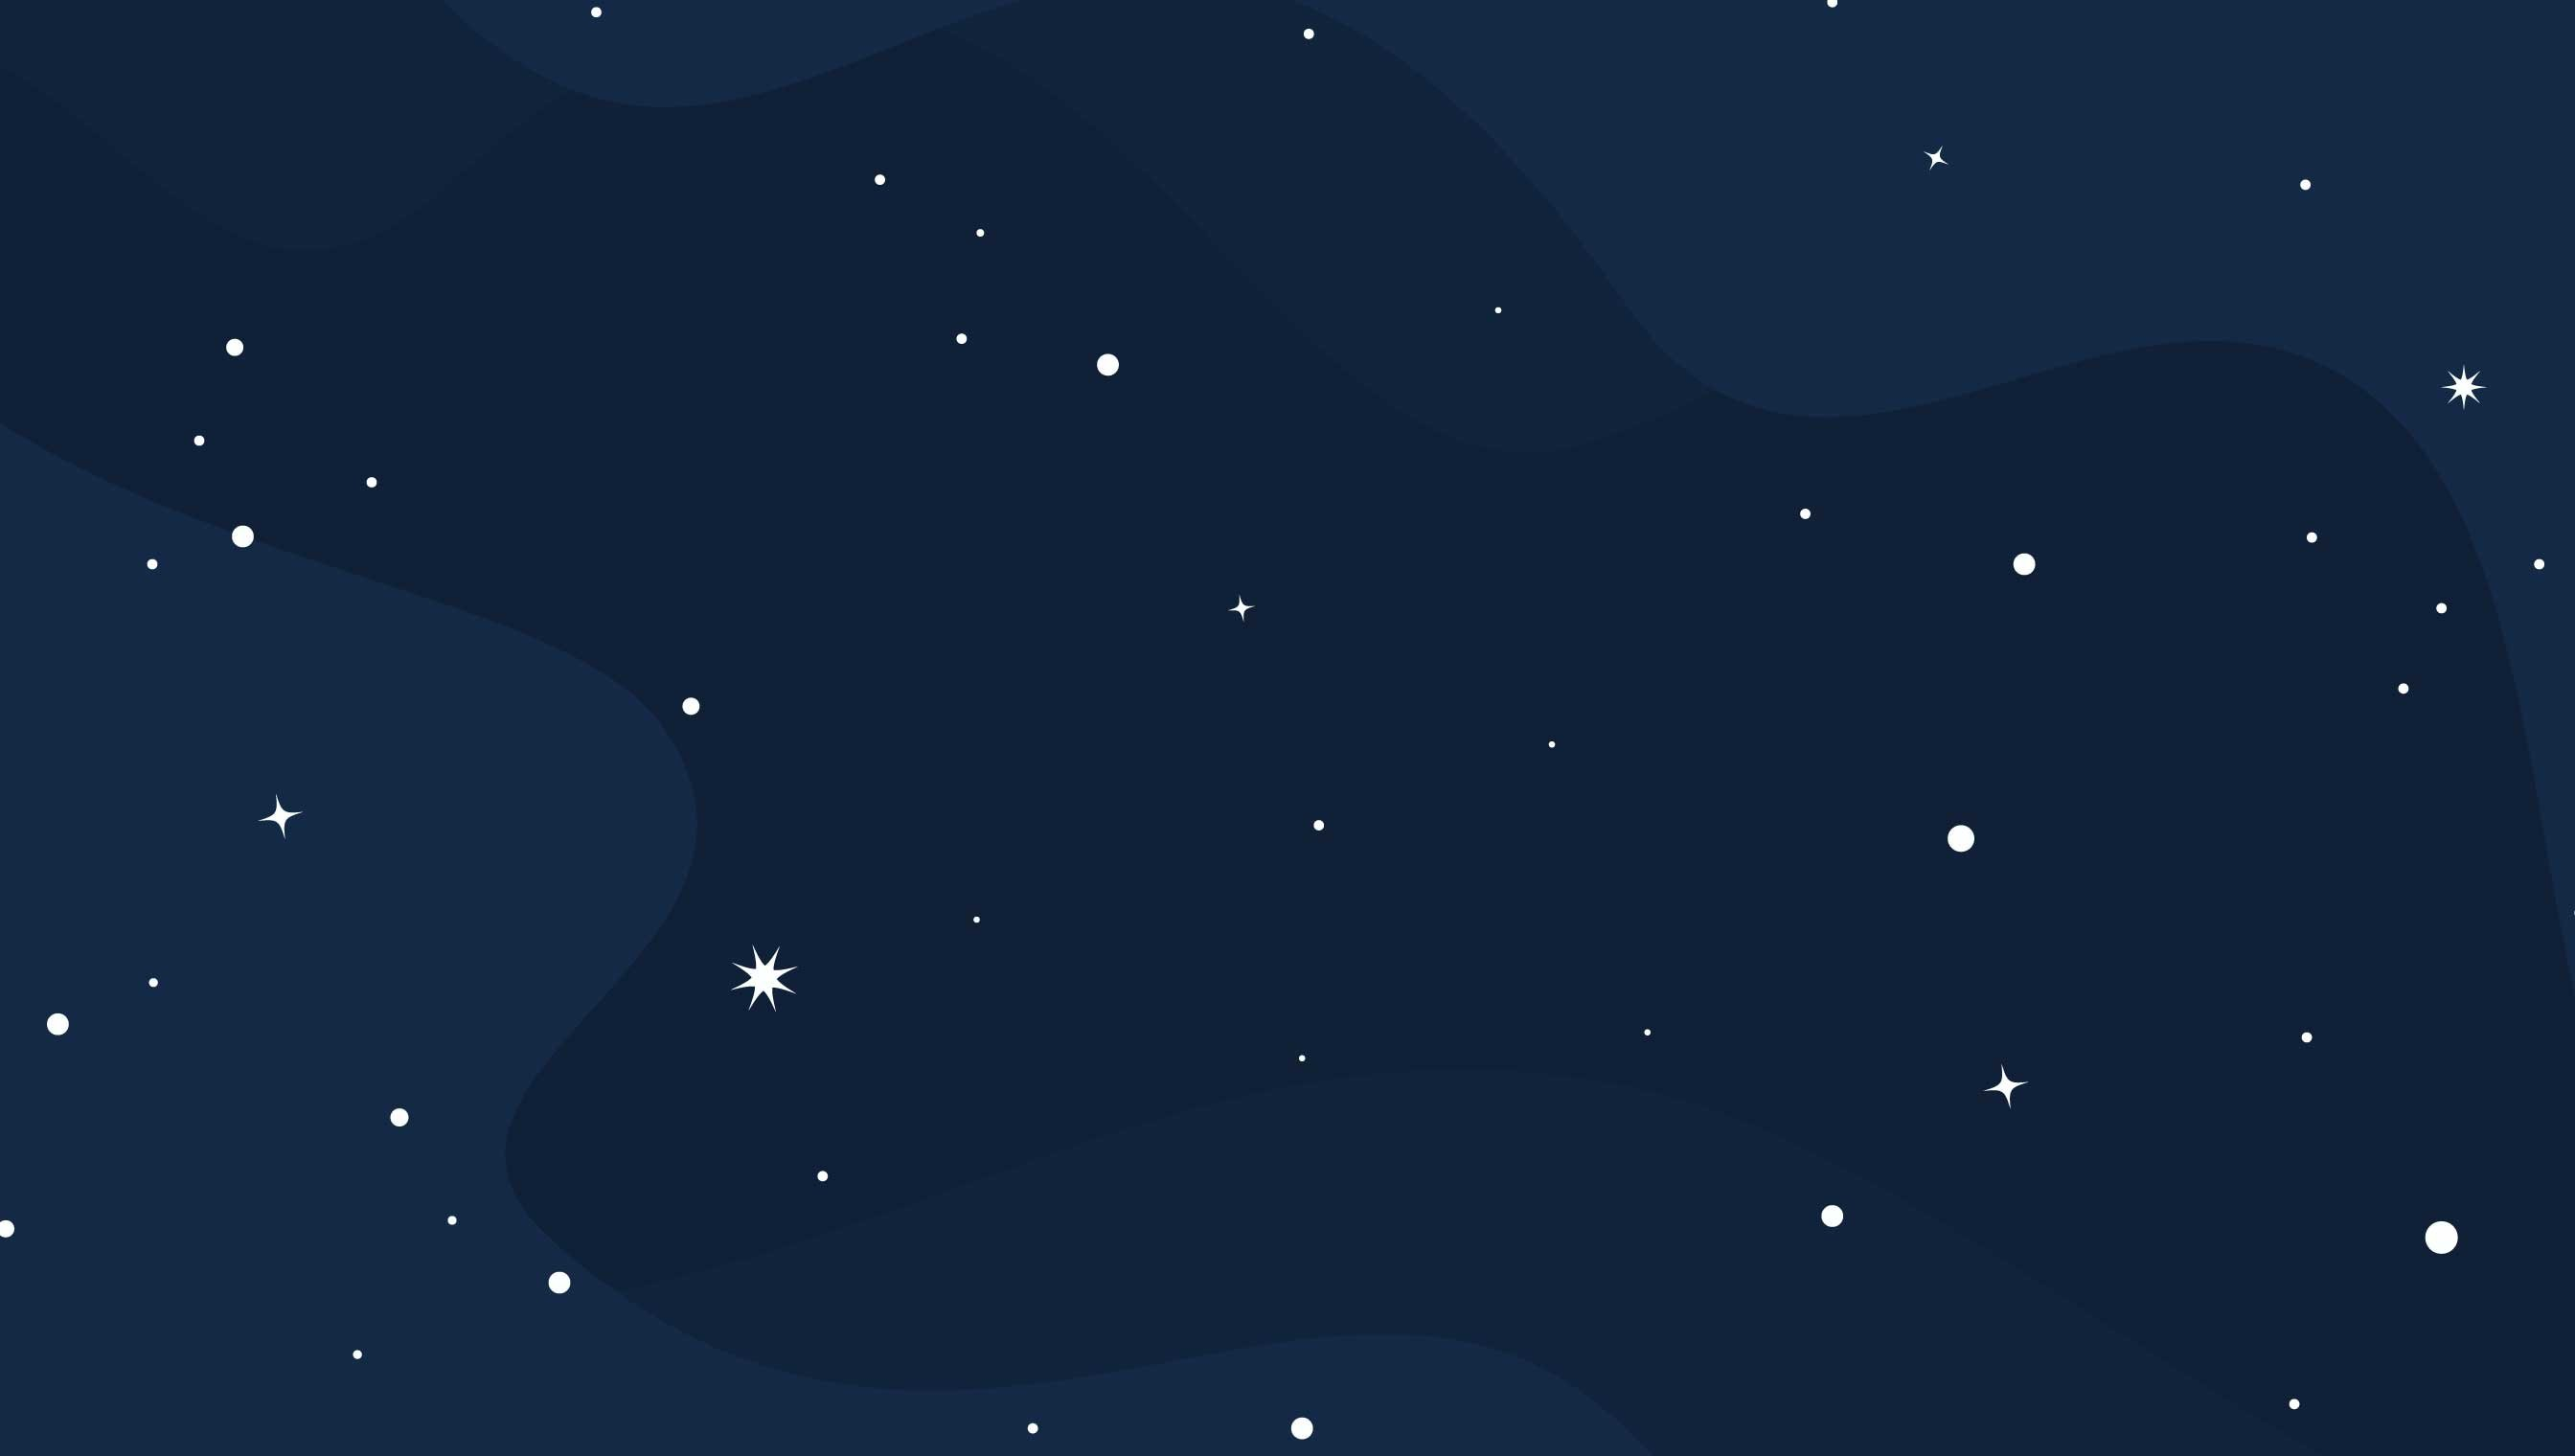 background scene - Space Background 5